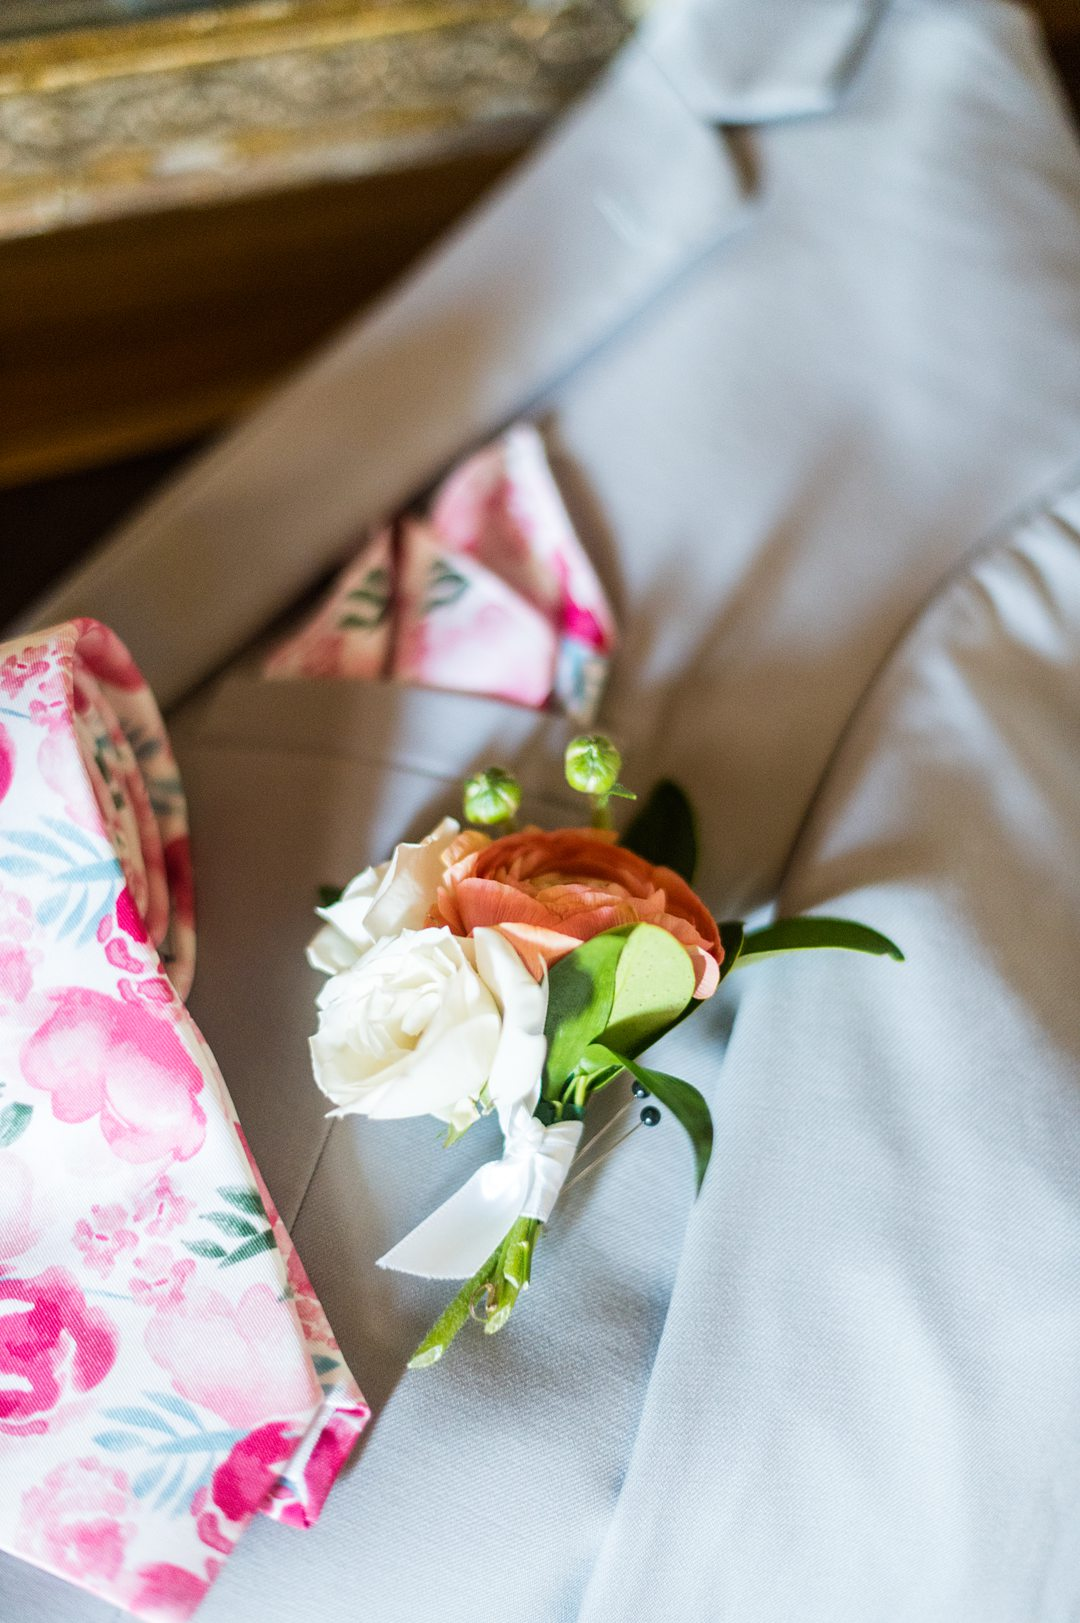 A ranunculus and spray rose boutonniere and pink floral tie and pocket square, for a small wedding in Charlottesville, VA during COVID. Photos by Mikkel Paige Photography.